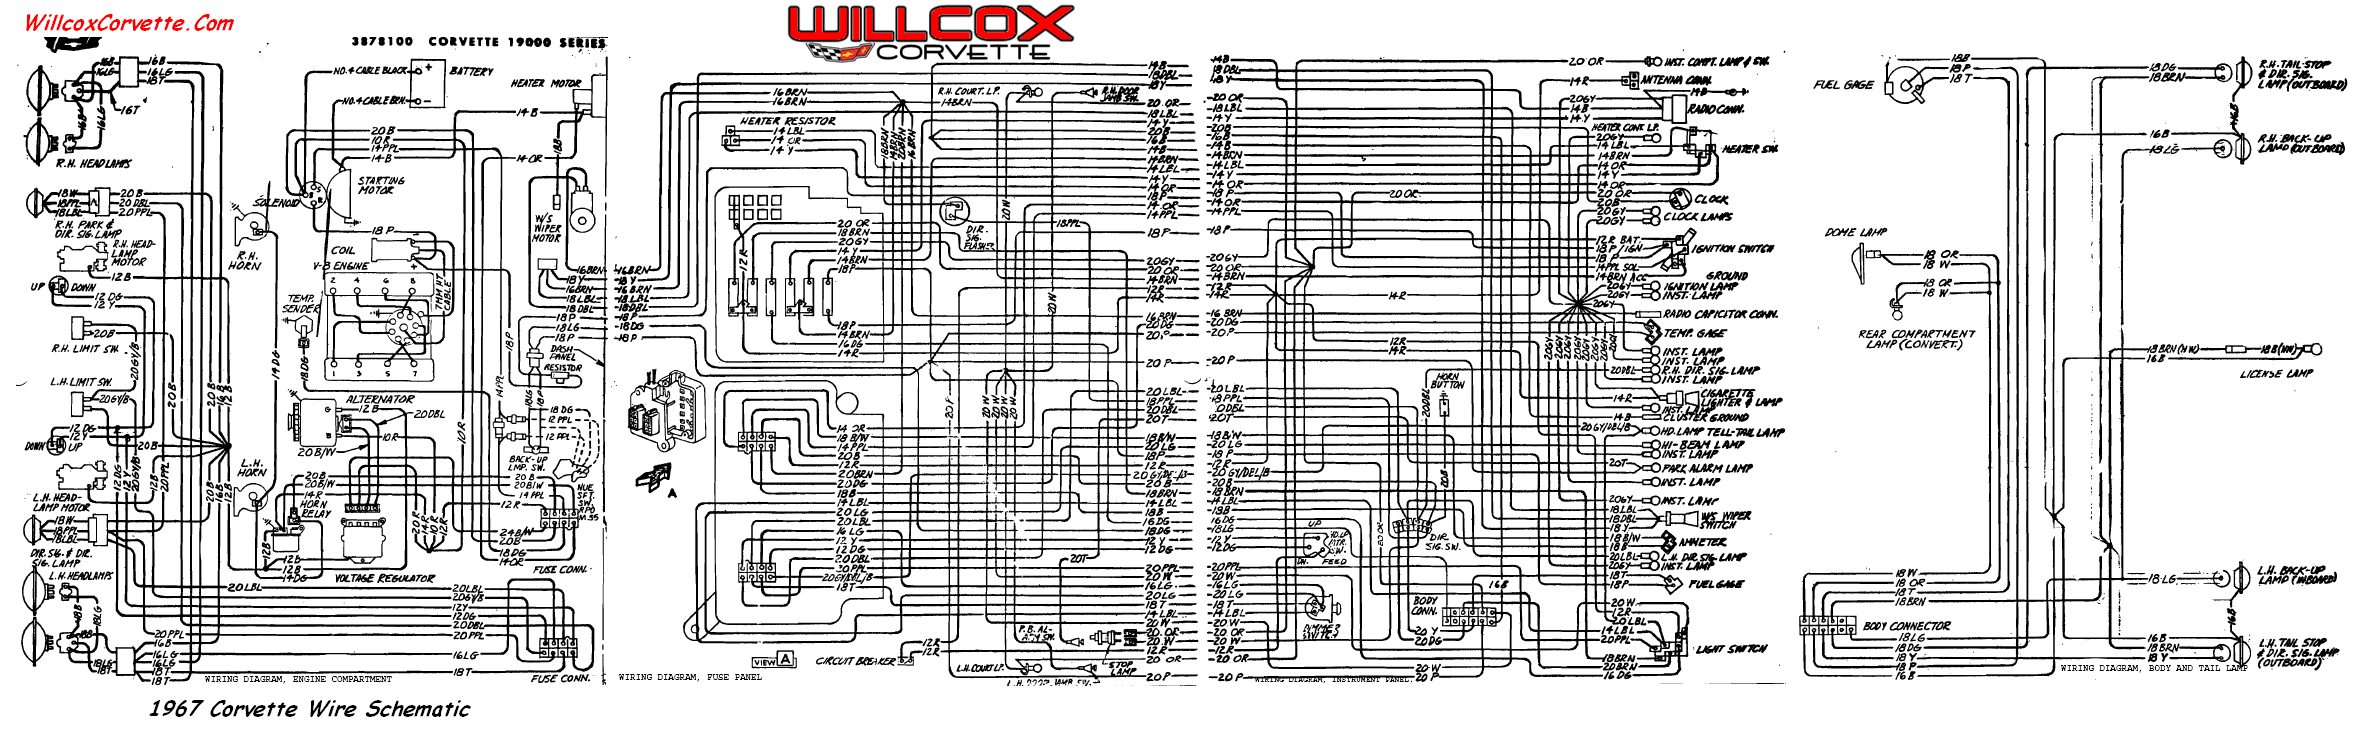 67 wire schematic for tracing wires 1978 corvette wiring diagram 1978 corvette starter wiring diagram 1978 corvette wiring harness at bakdesigns.co